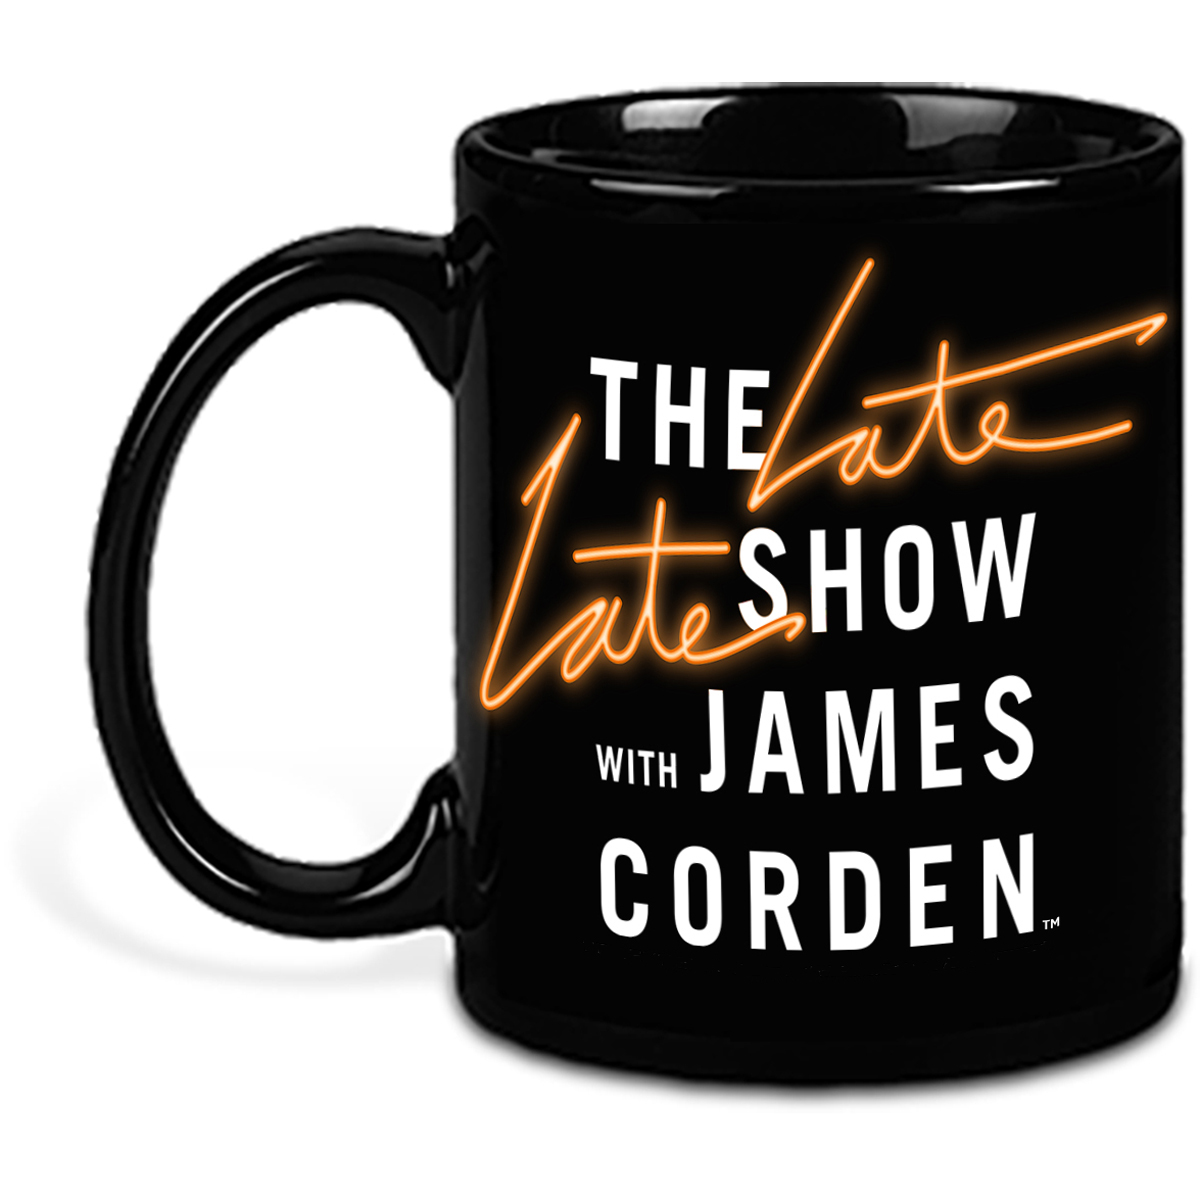 The Late Late Show with James Corden Mug